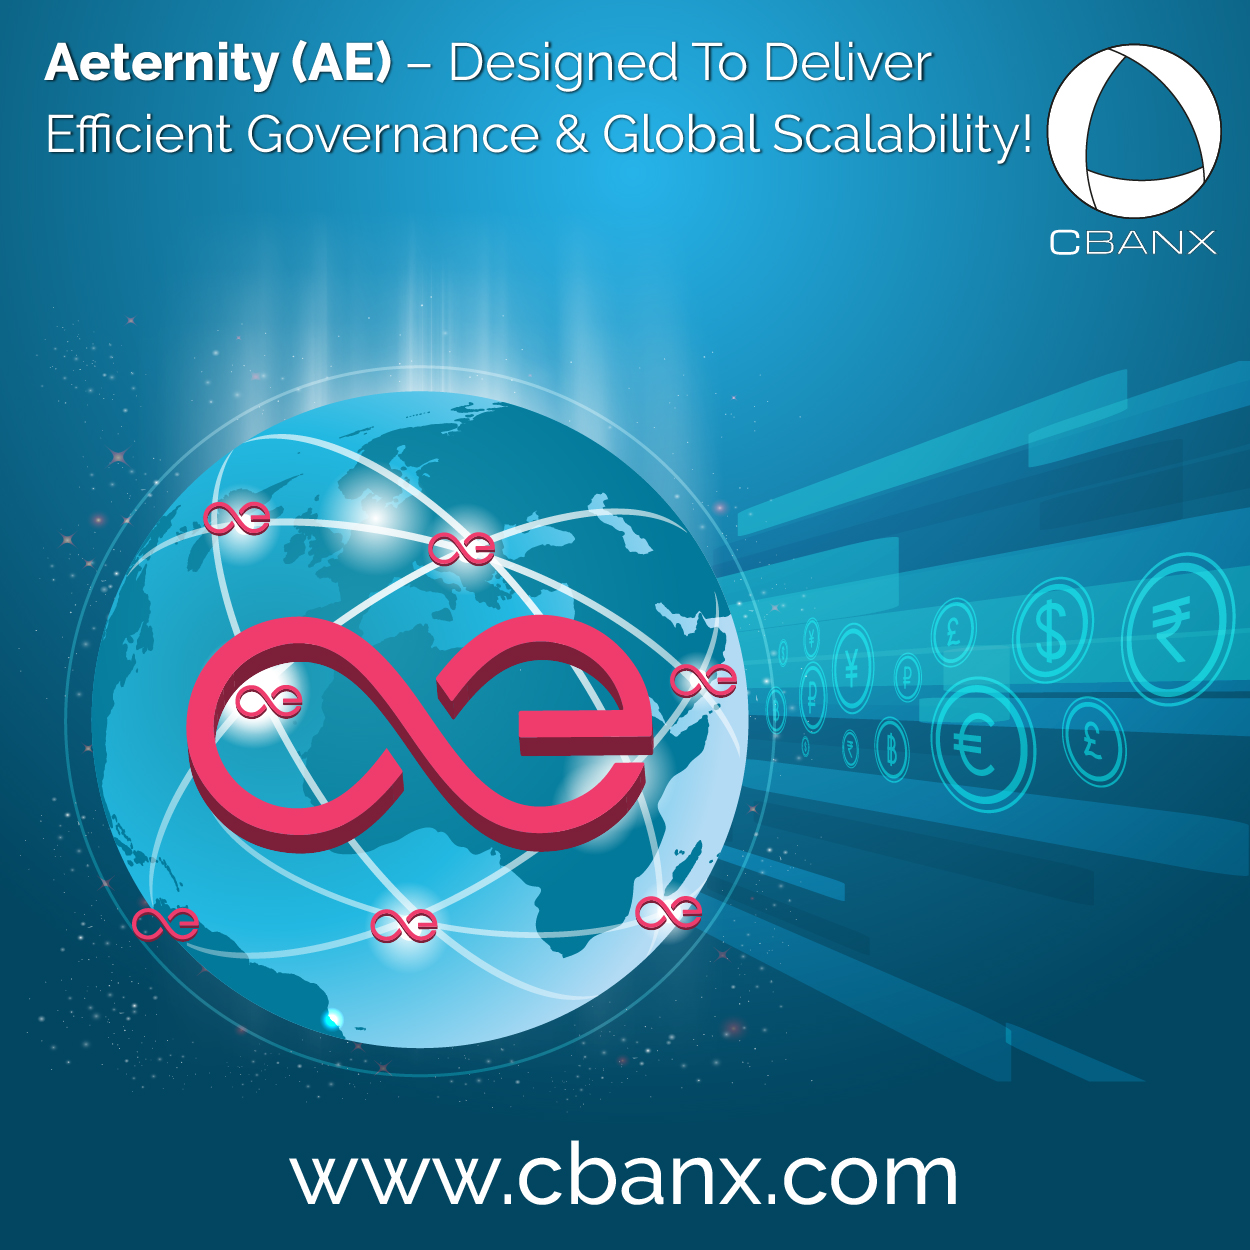 Aeternity (AE) – Designed To Deliver Efficient Governance And Global Scalability!